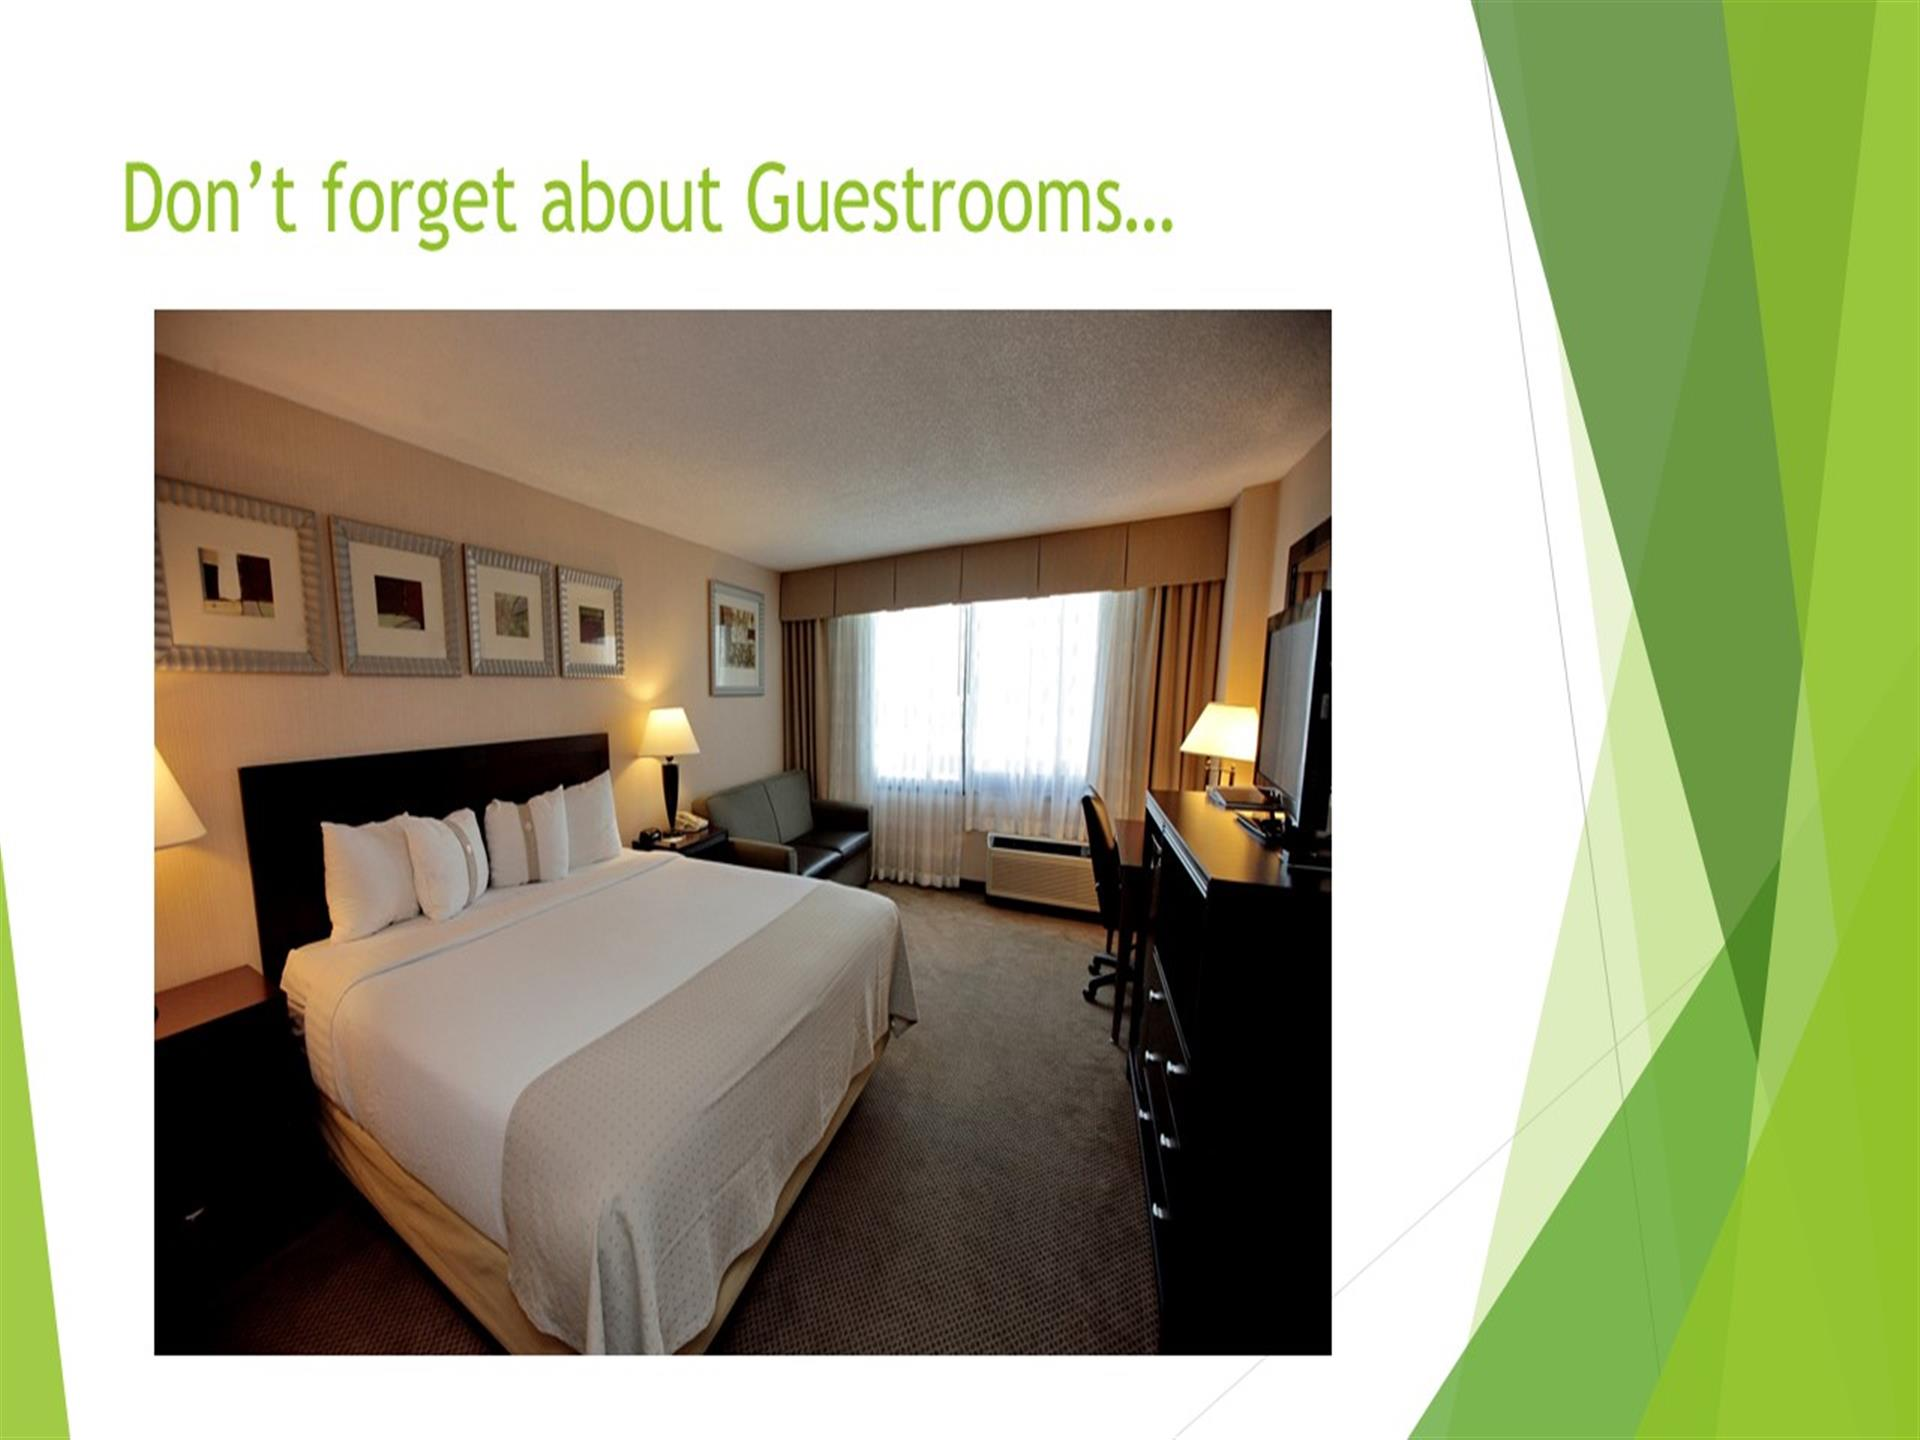 Don't forget about the guestrooms - hotel room with king size bed, couch, gray carpet, dresser, tv, desk